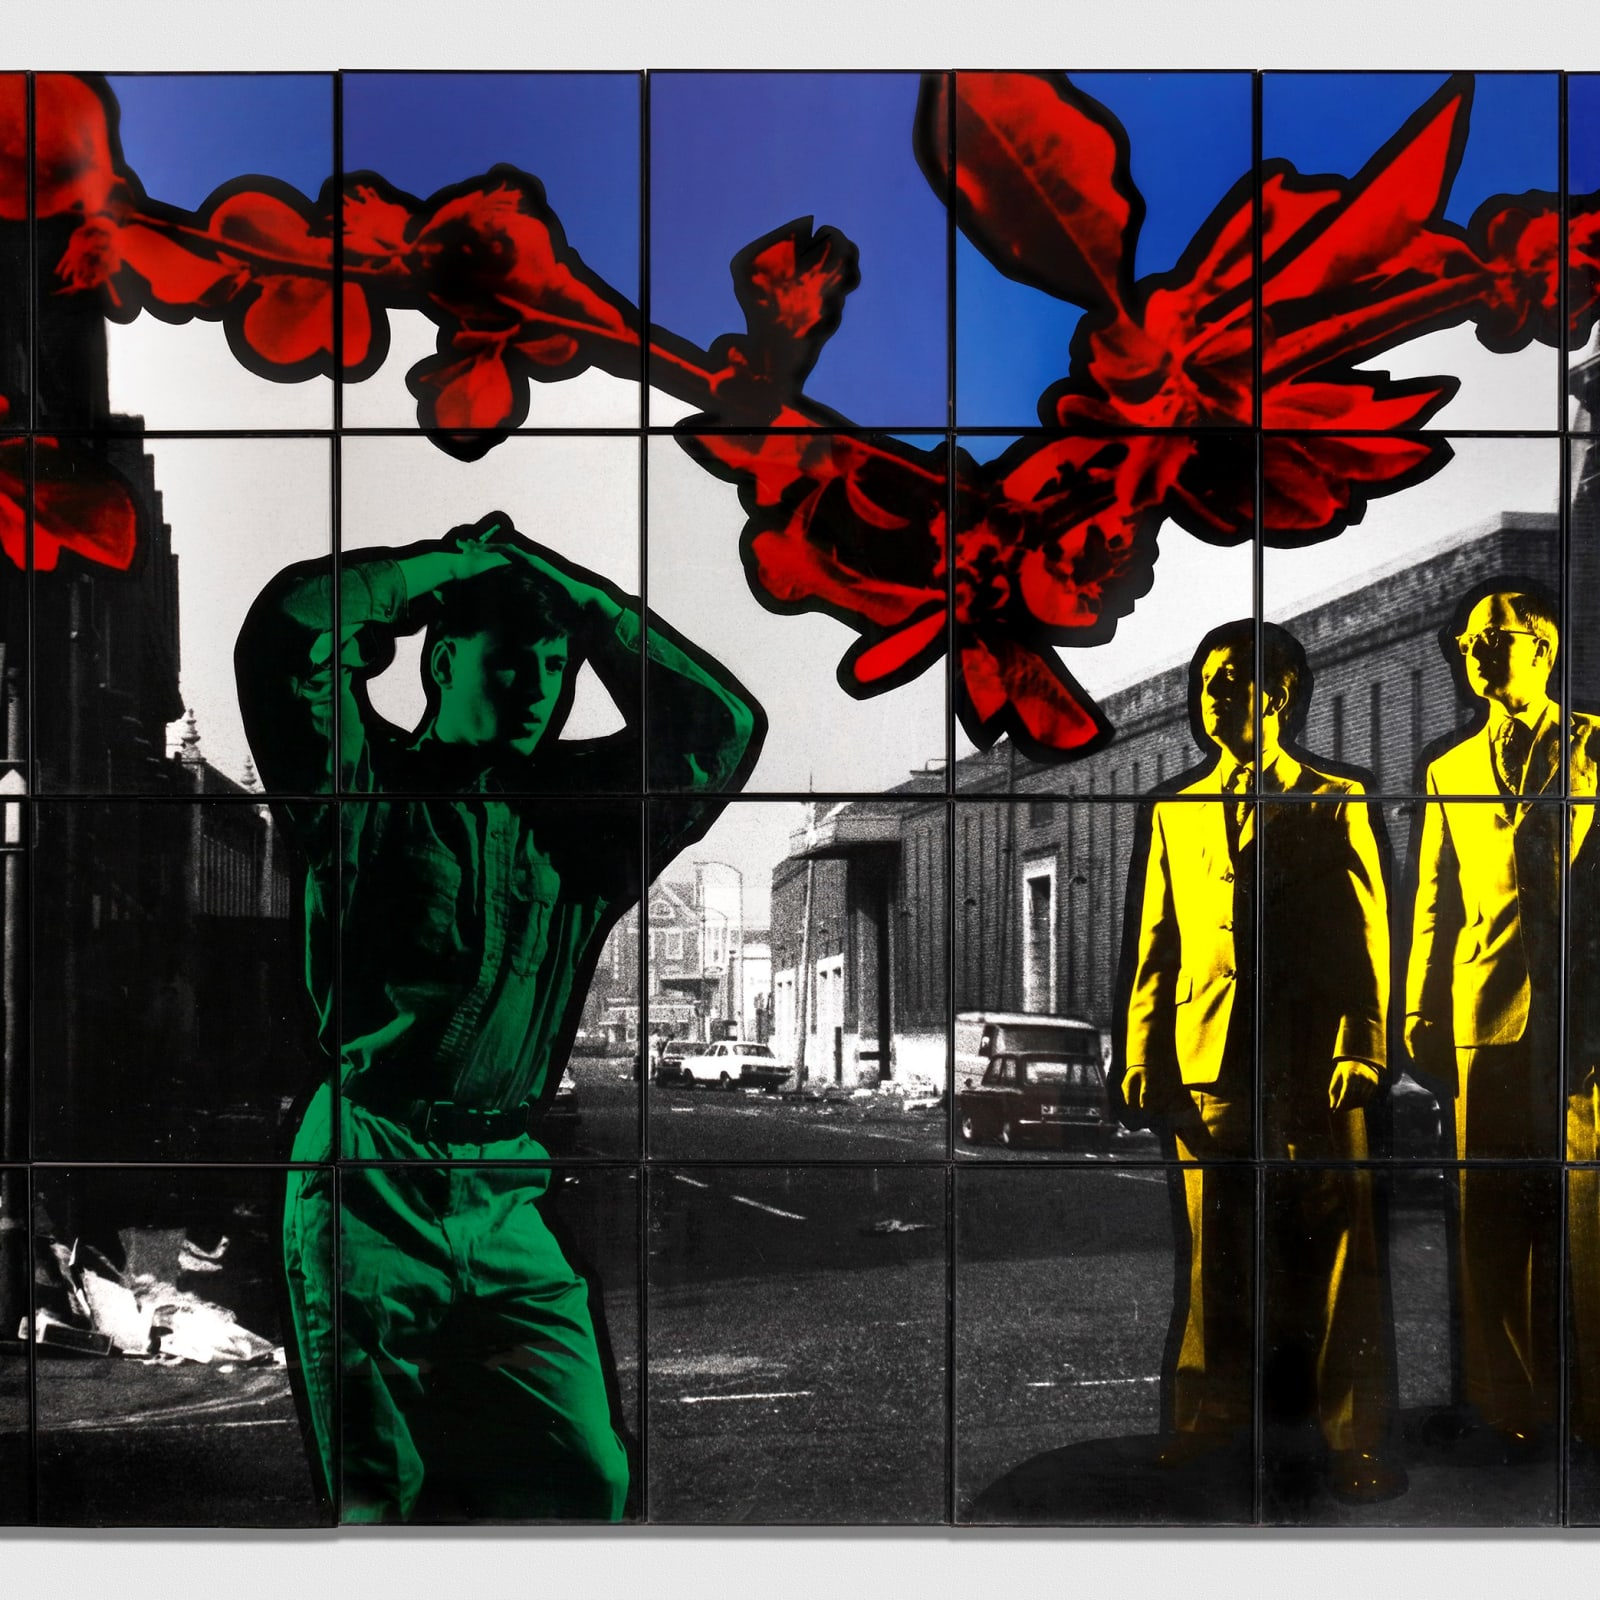 Gilbert & George, Street Meet, 1982